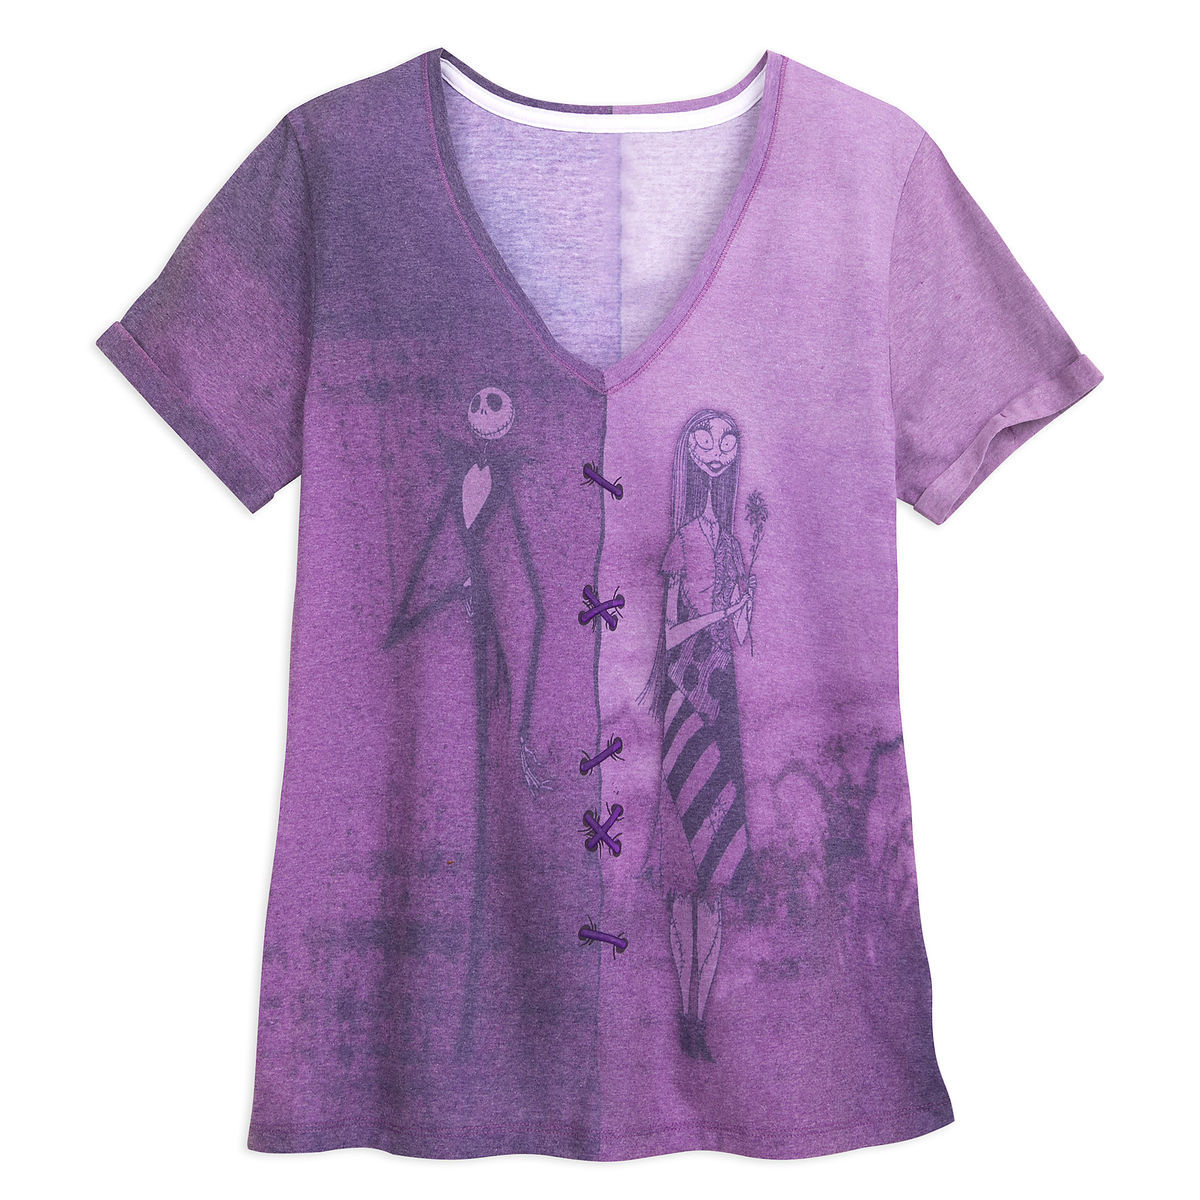 Jack Skellington and Sally Fashion T-Shirt for Women | shopDisney